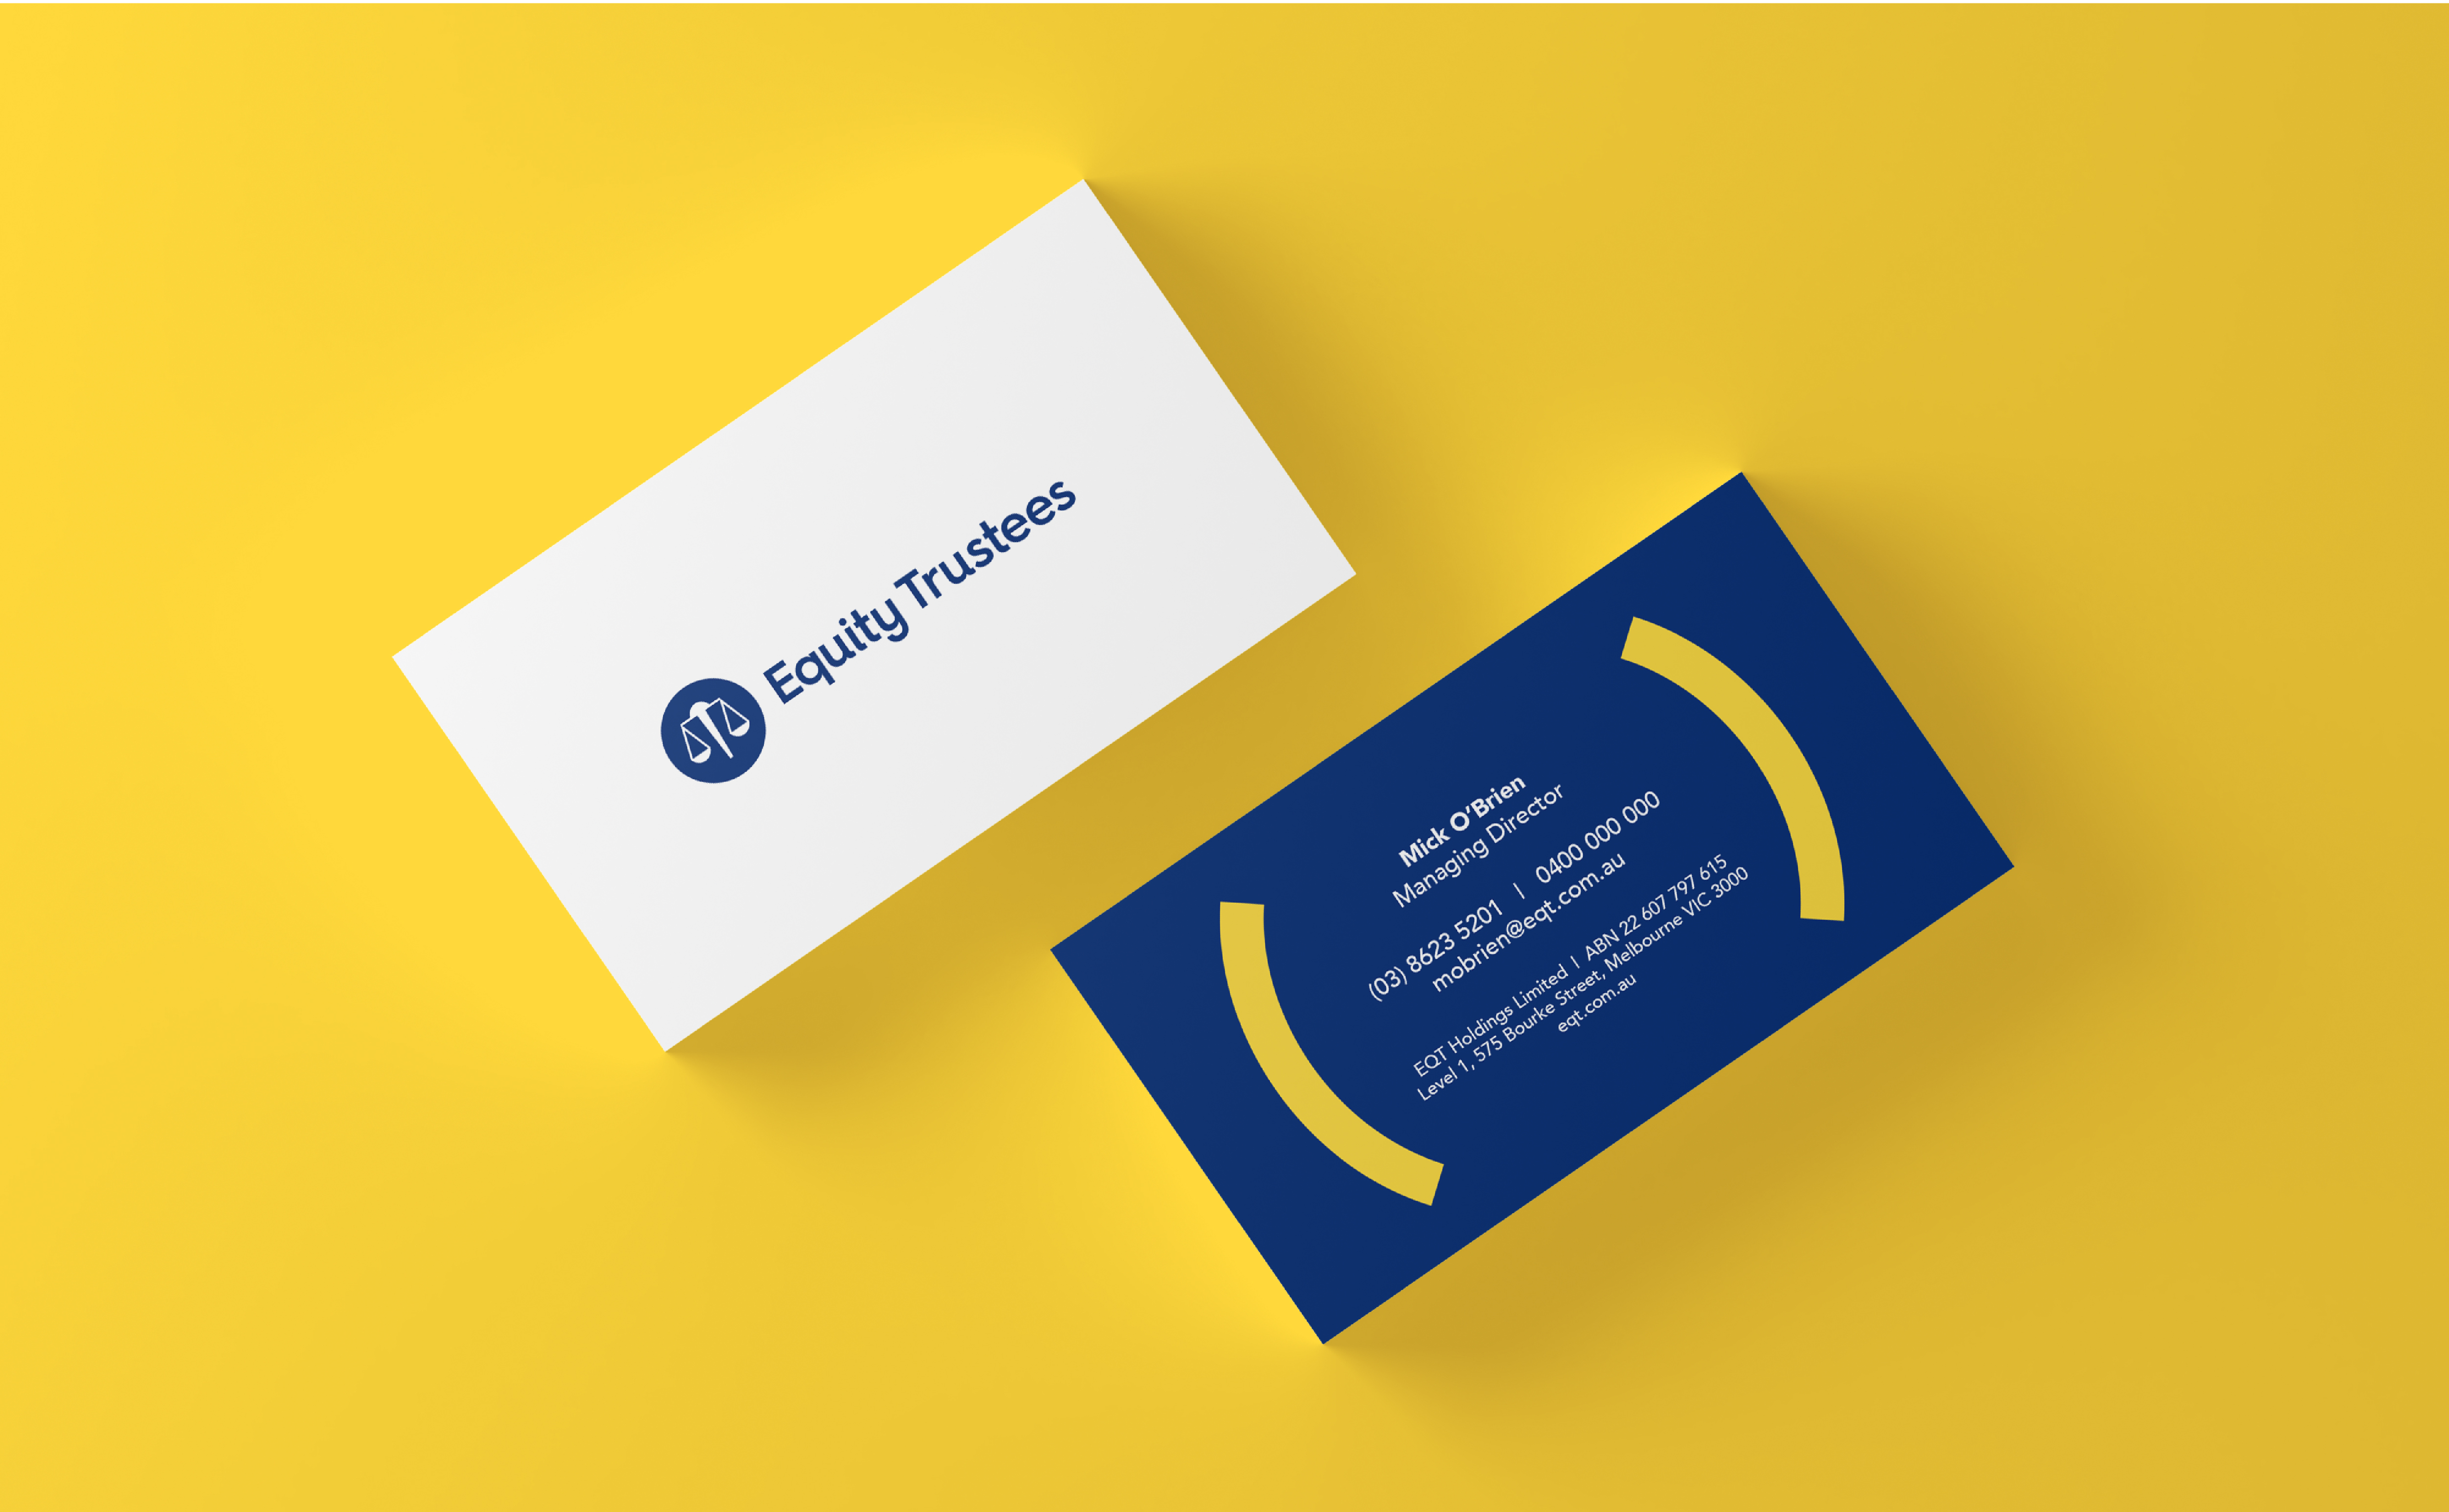 Equity Trustees - New Branding applied to business cards